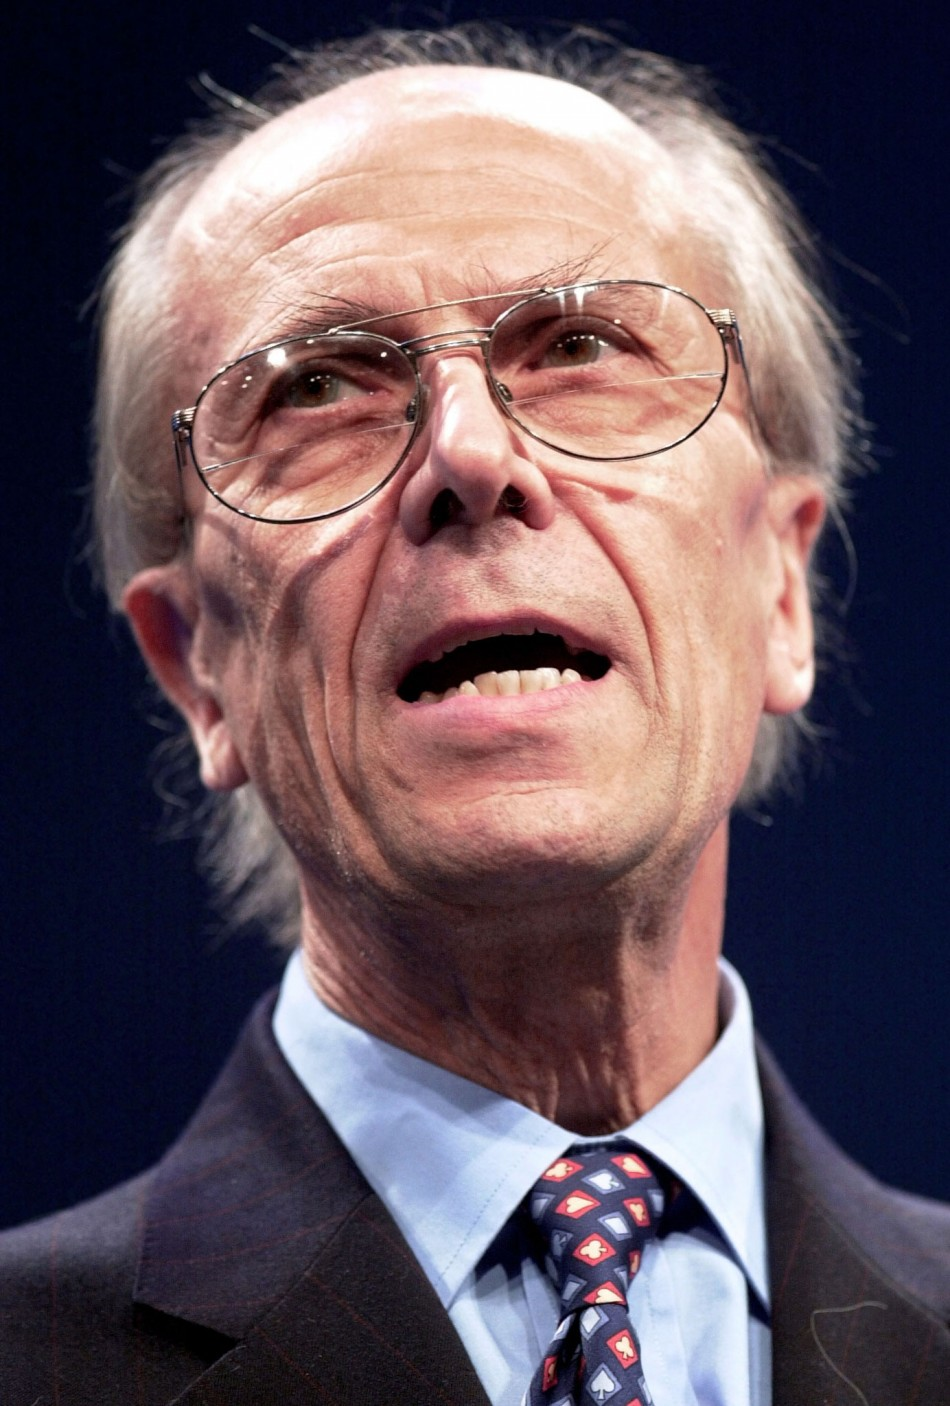 Lord Tebbit Police Killers Should Get The Gallows